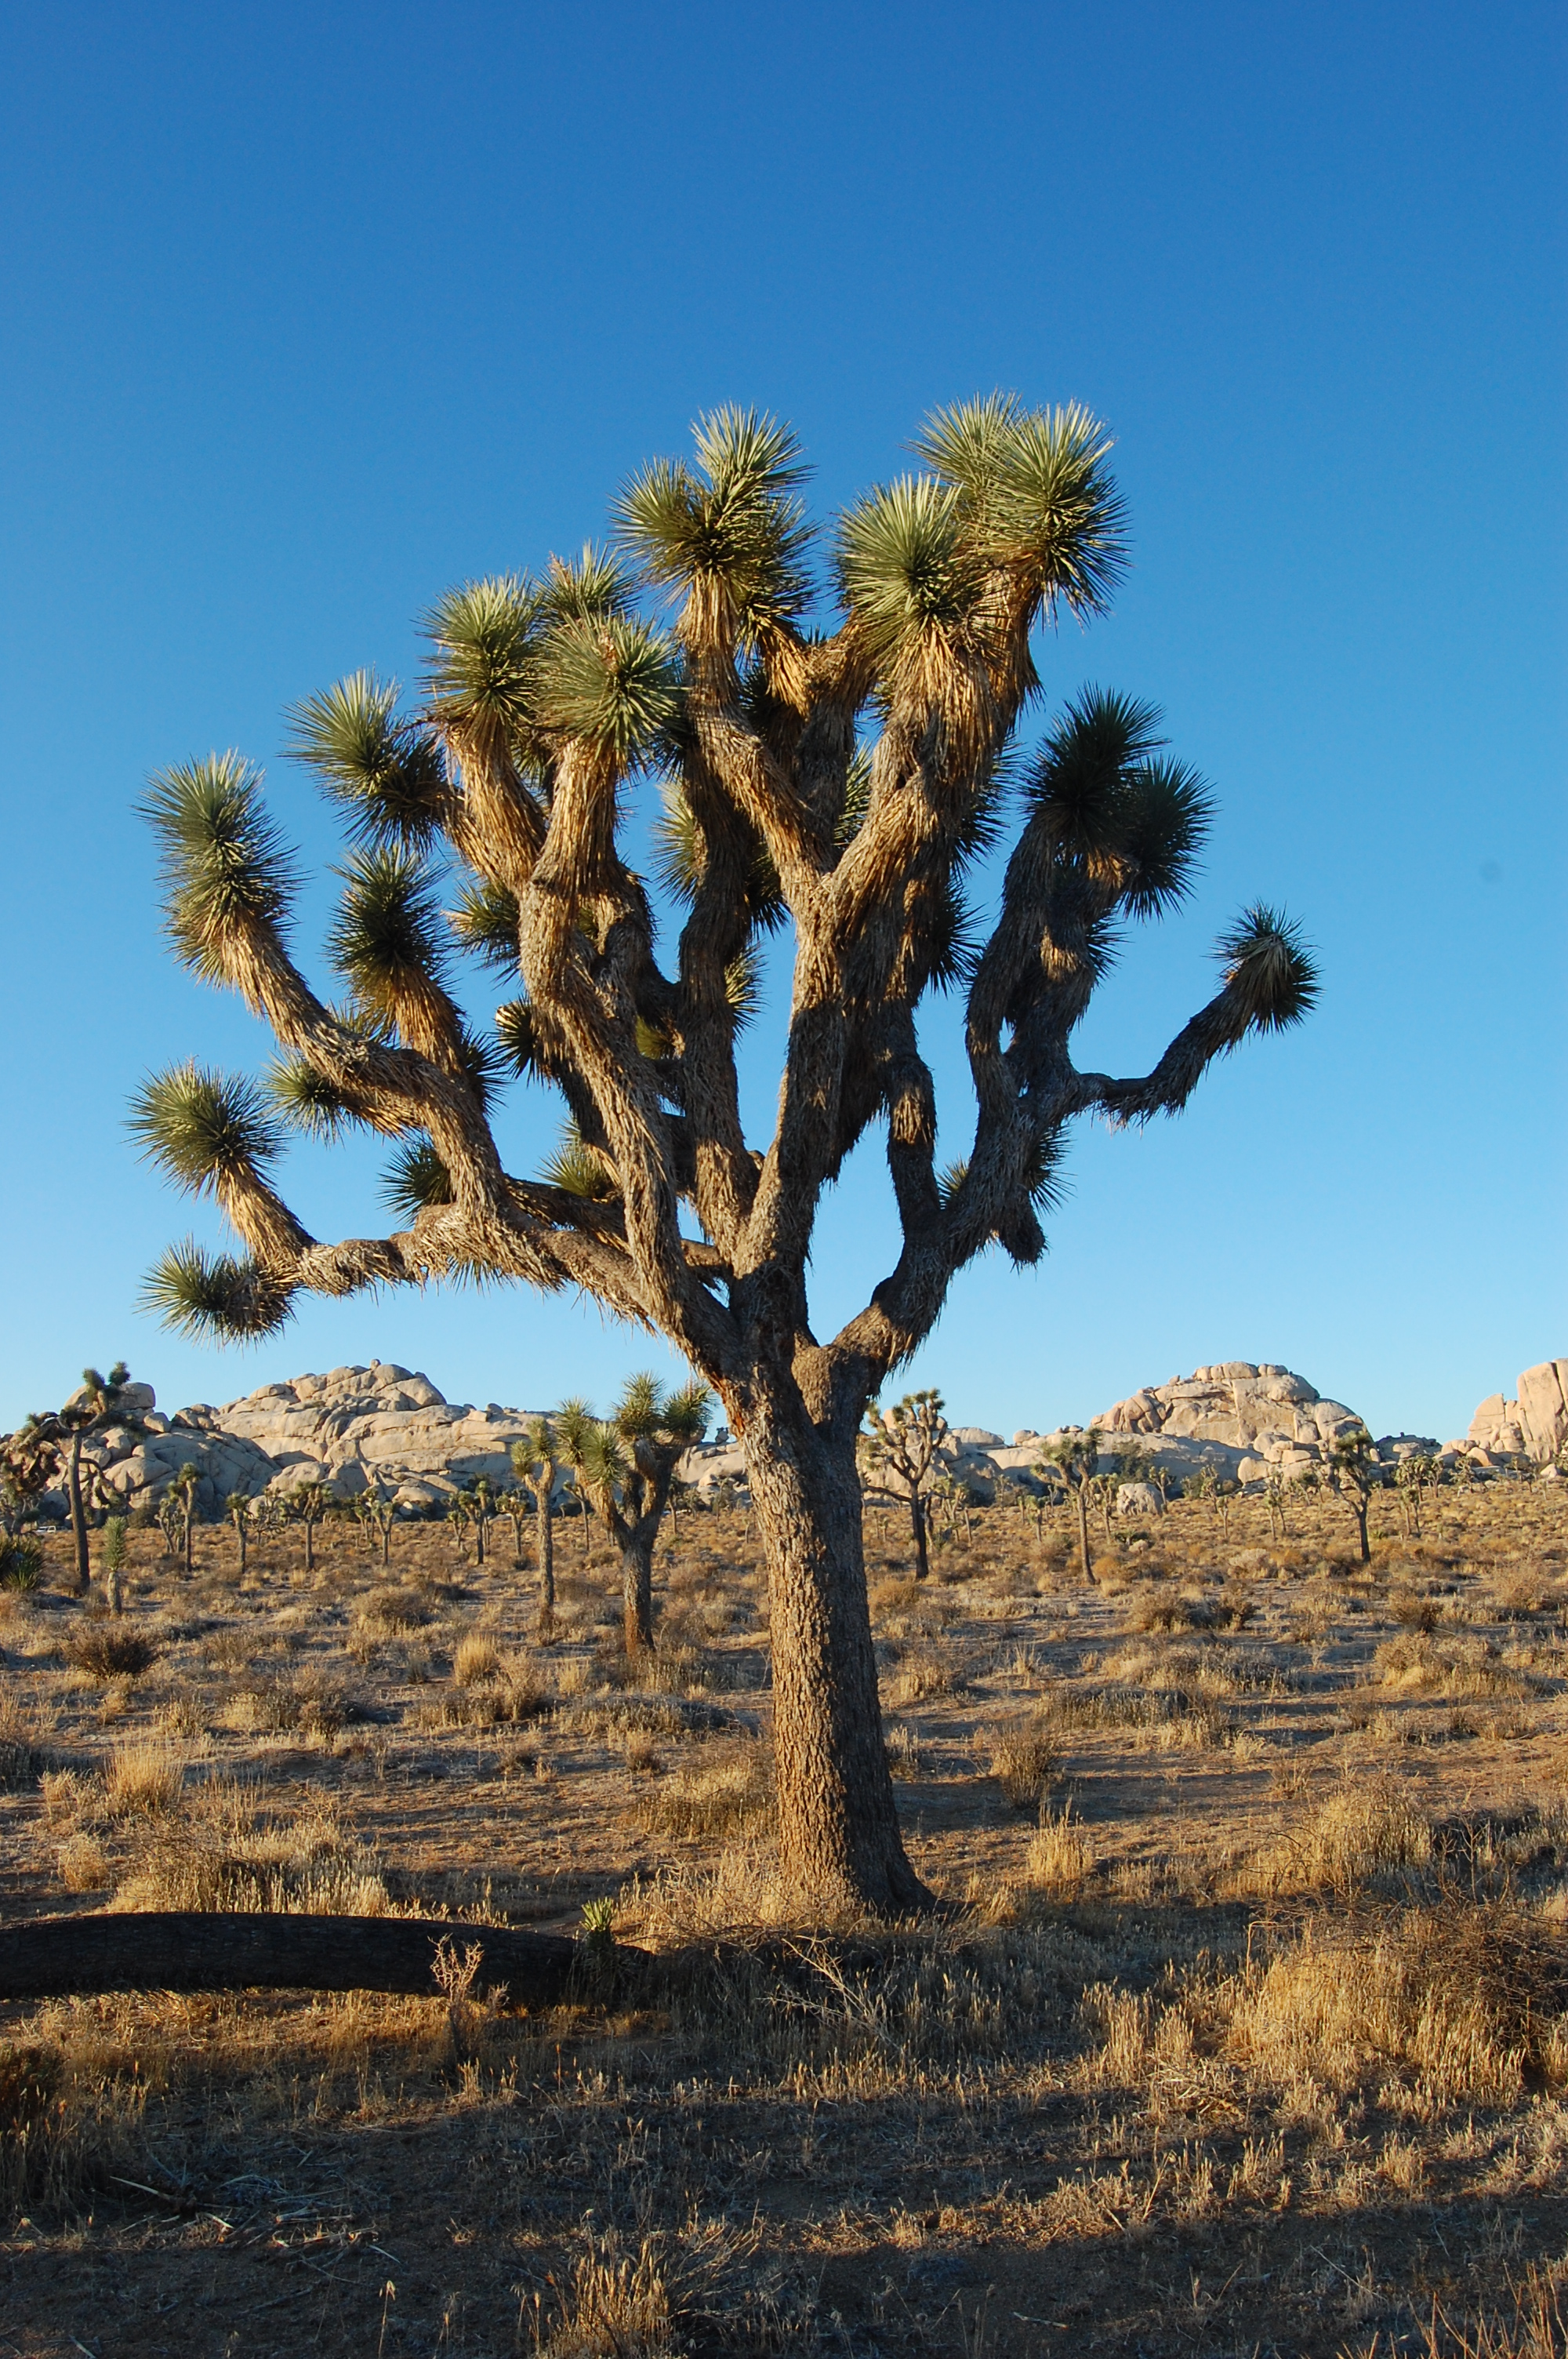 joshua tree dating Locked in an embrace, the bodies of a pair of hikers who went missing three months ago in california's joshua tree national park are thought to have been found.